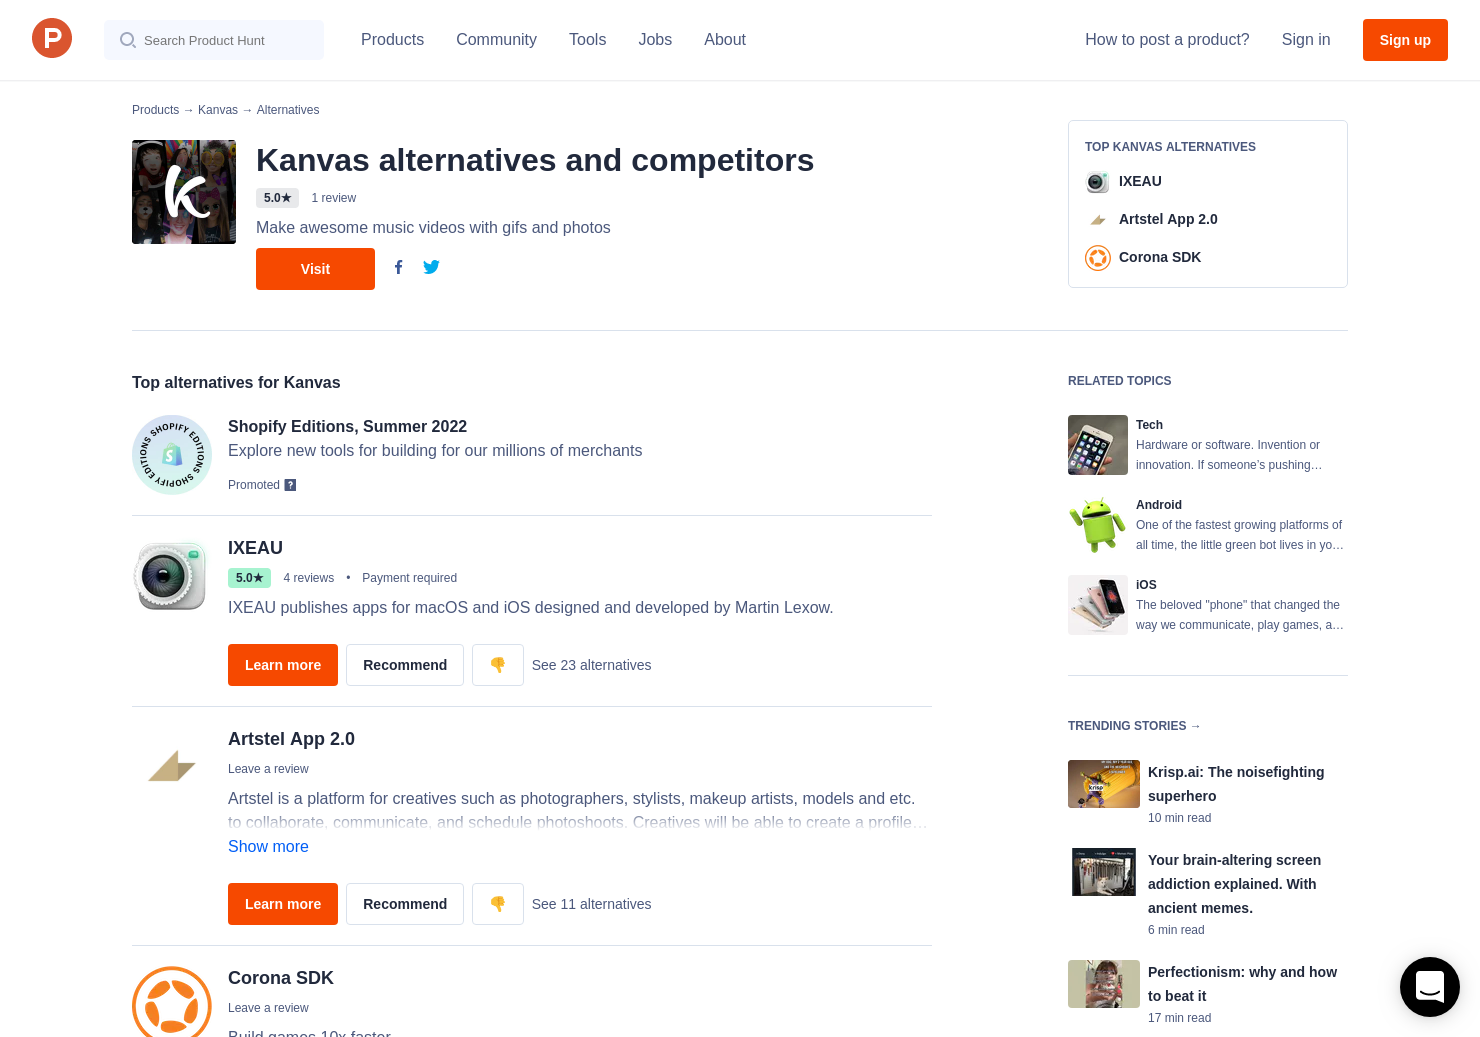 3 Alternatives to Kanvas | Product Hunt